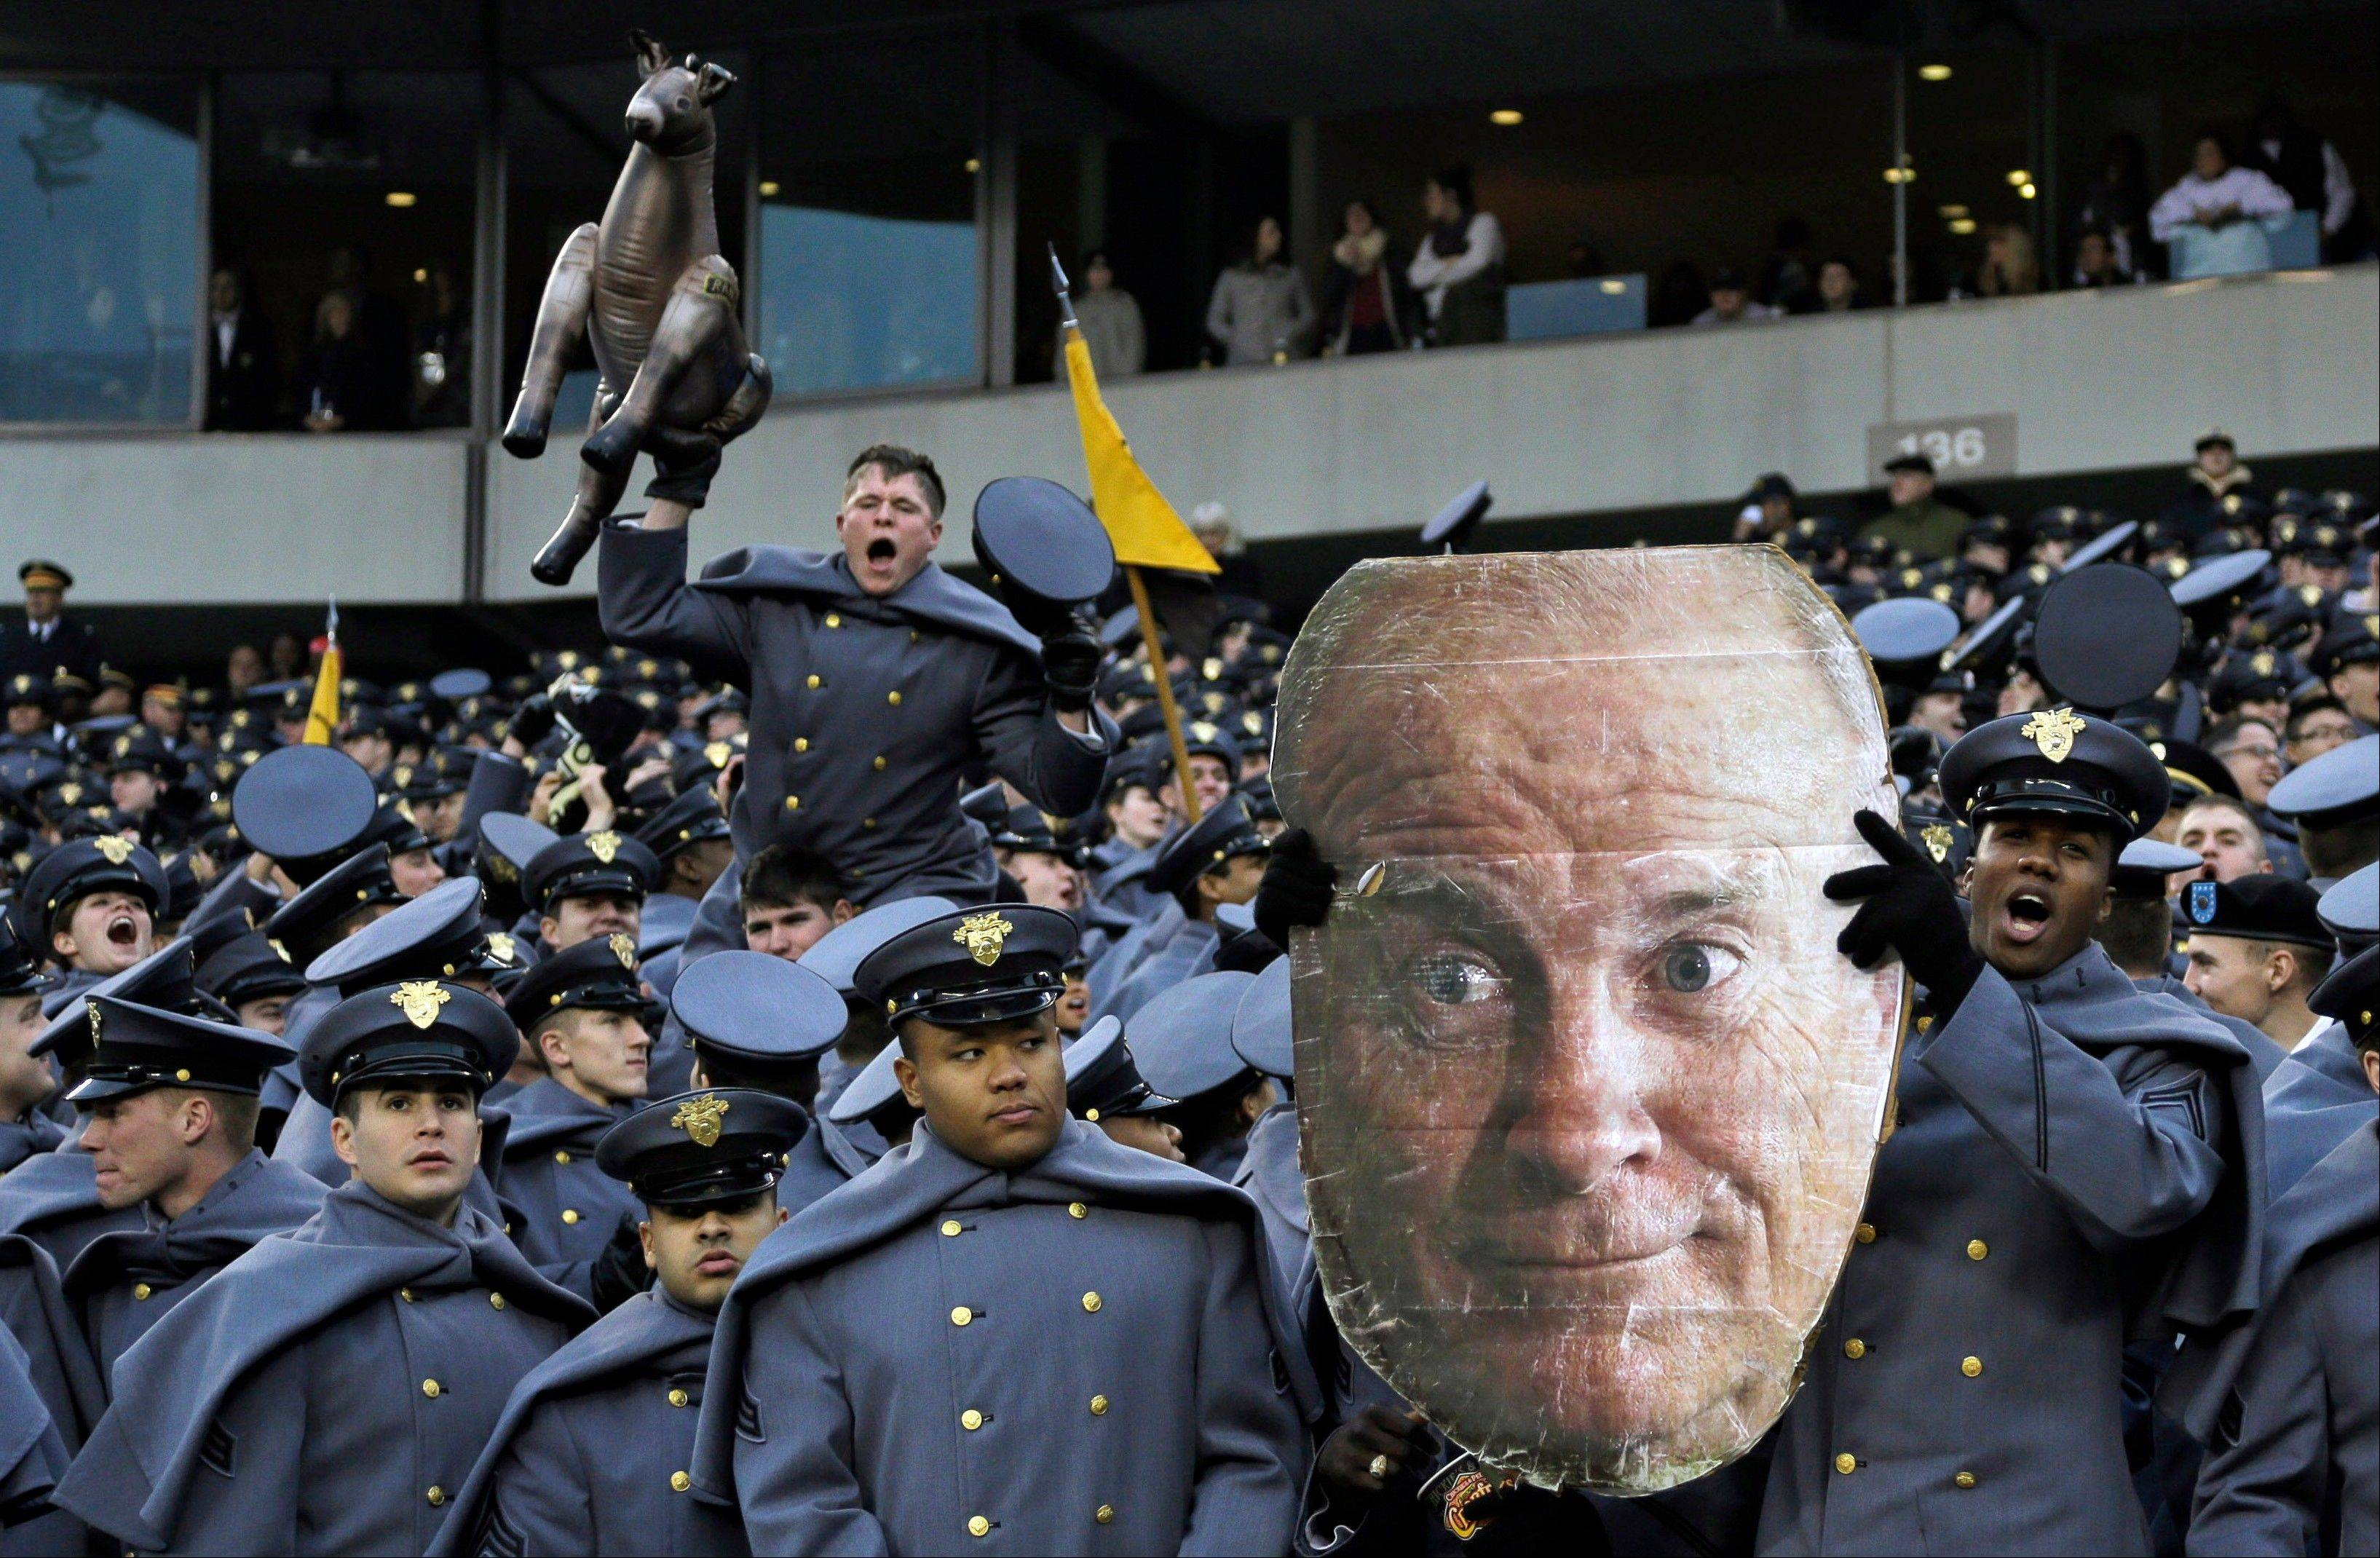 Army Cadets cheer and hold an image Vice President Joe Biden during the first half in Philadelphia.